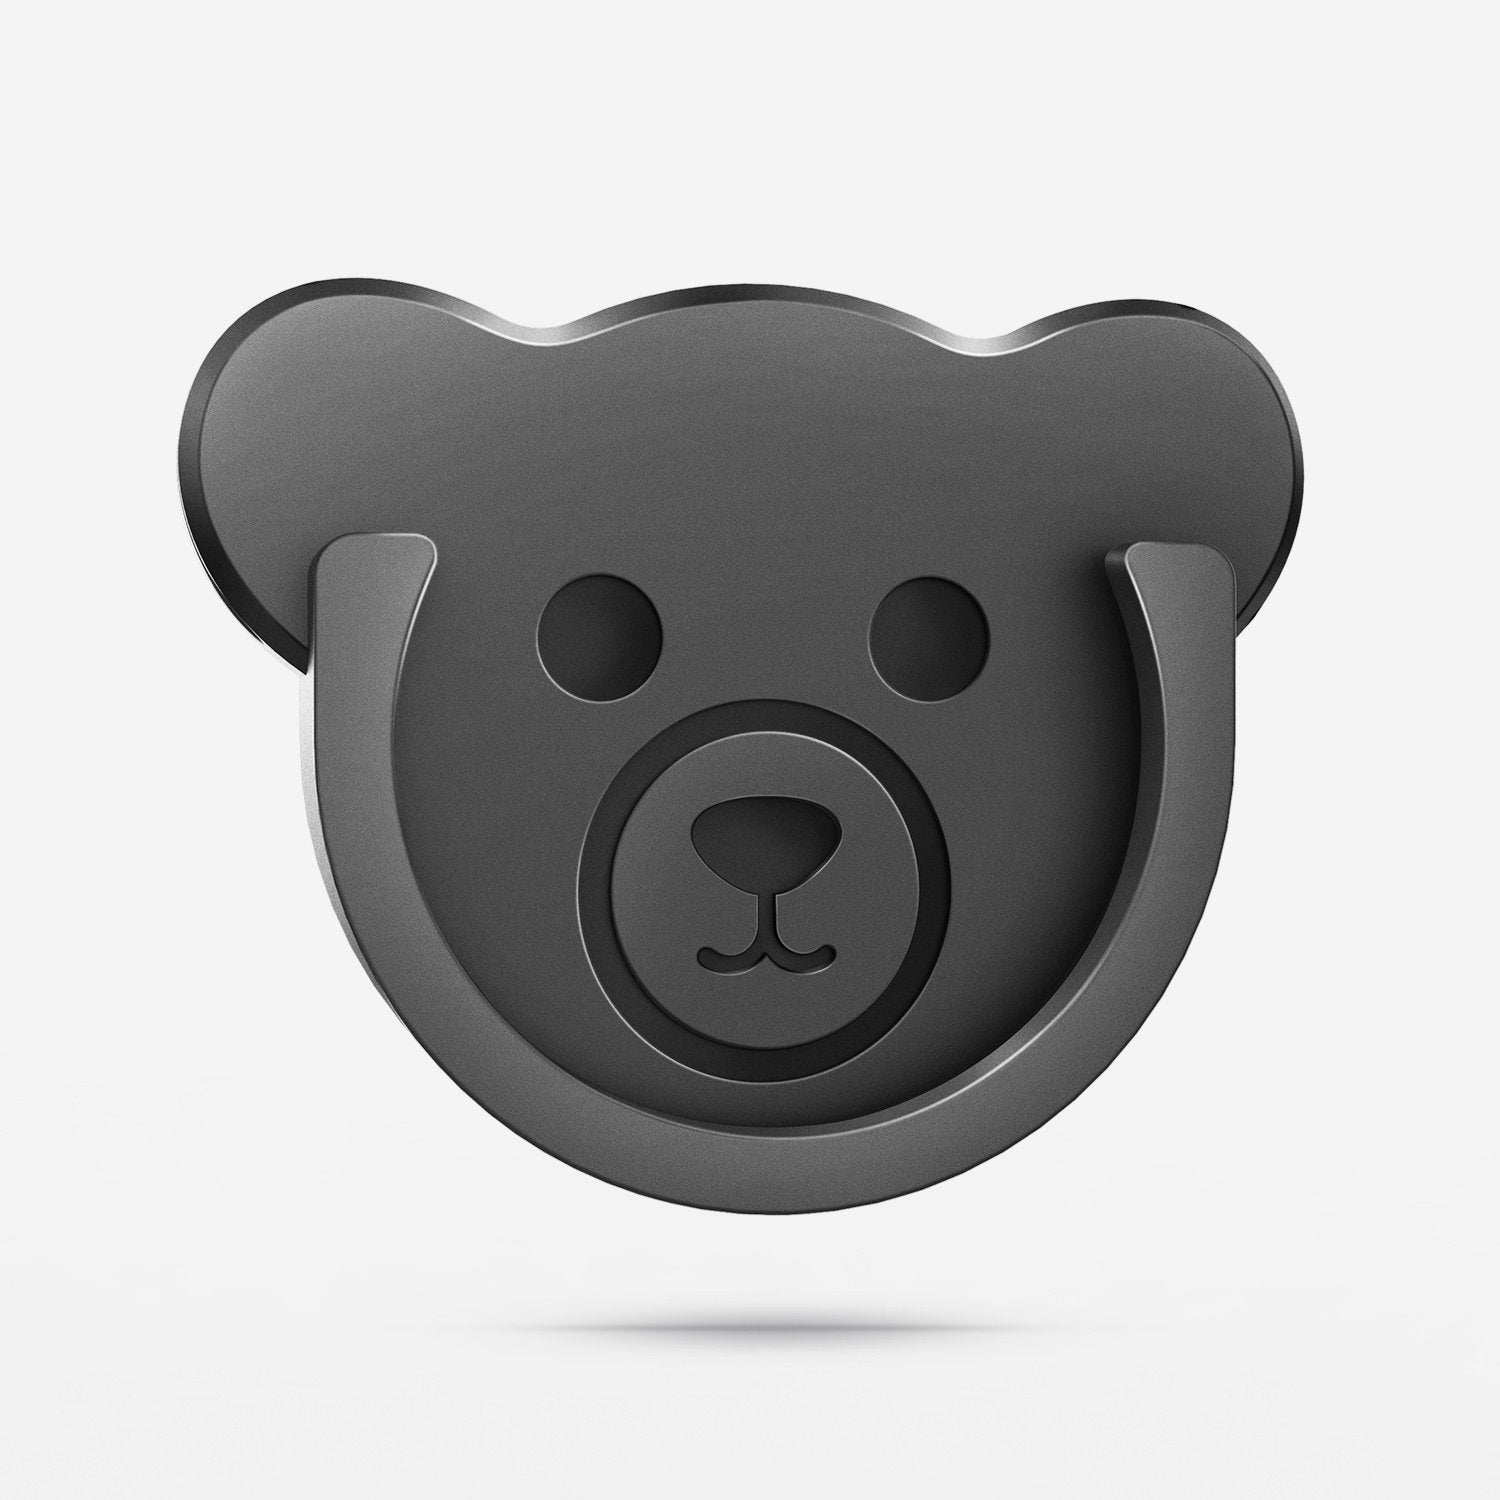 TOPGO Grips Mount for Phone Stand Bear 🐻 Style Phone Holder (black) 3 Pack